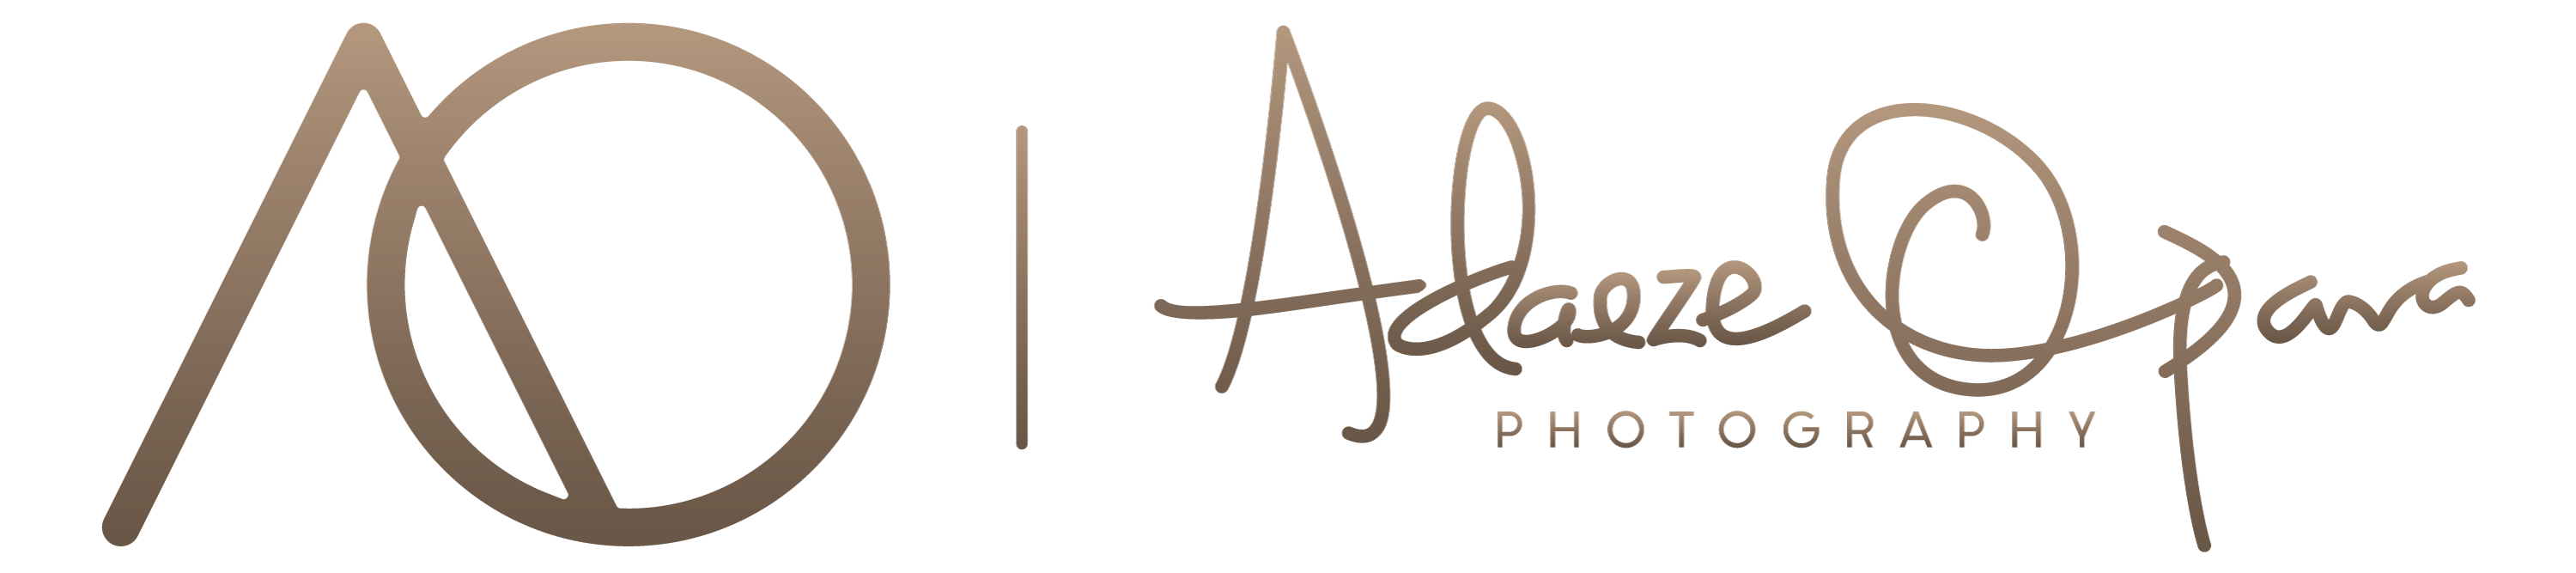 Scottsdale, AZ Family Photographer | Adaeze Opara Photography